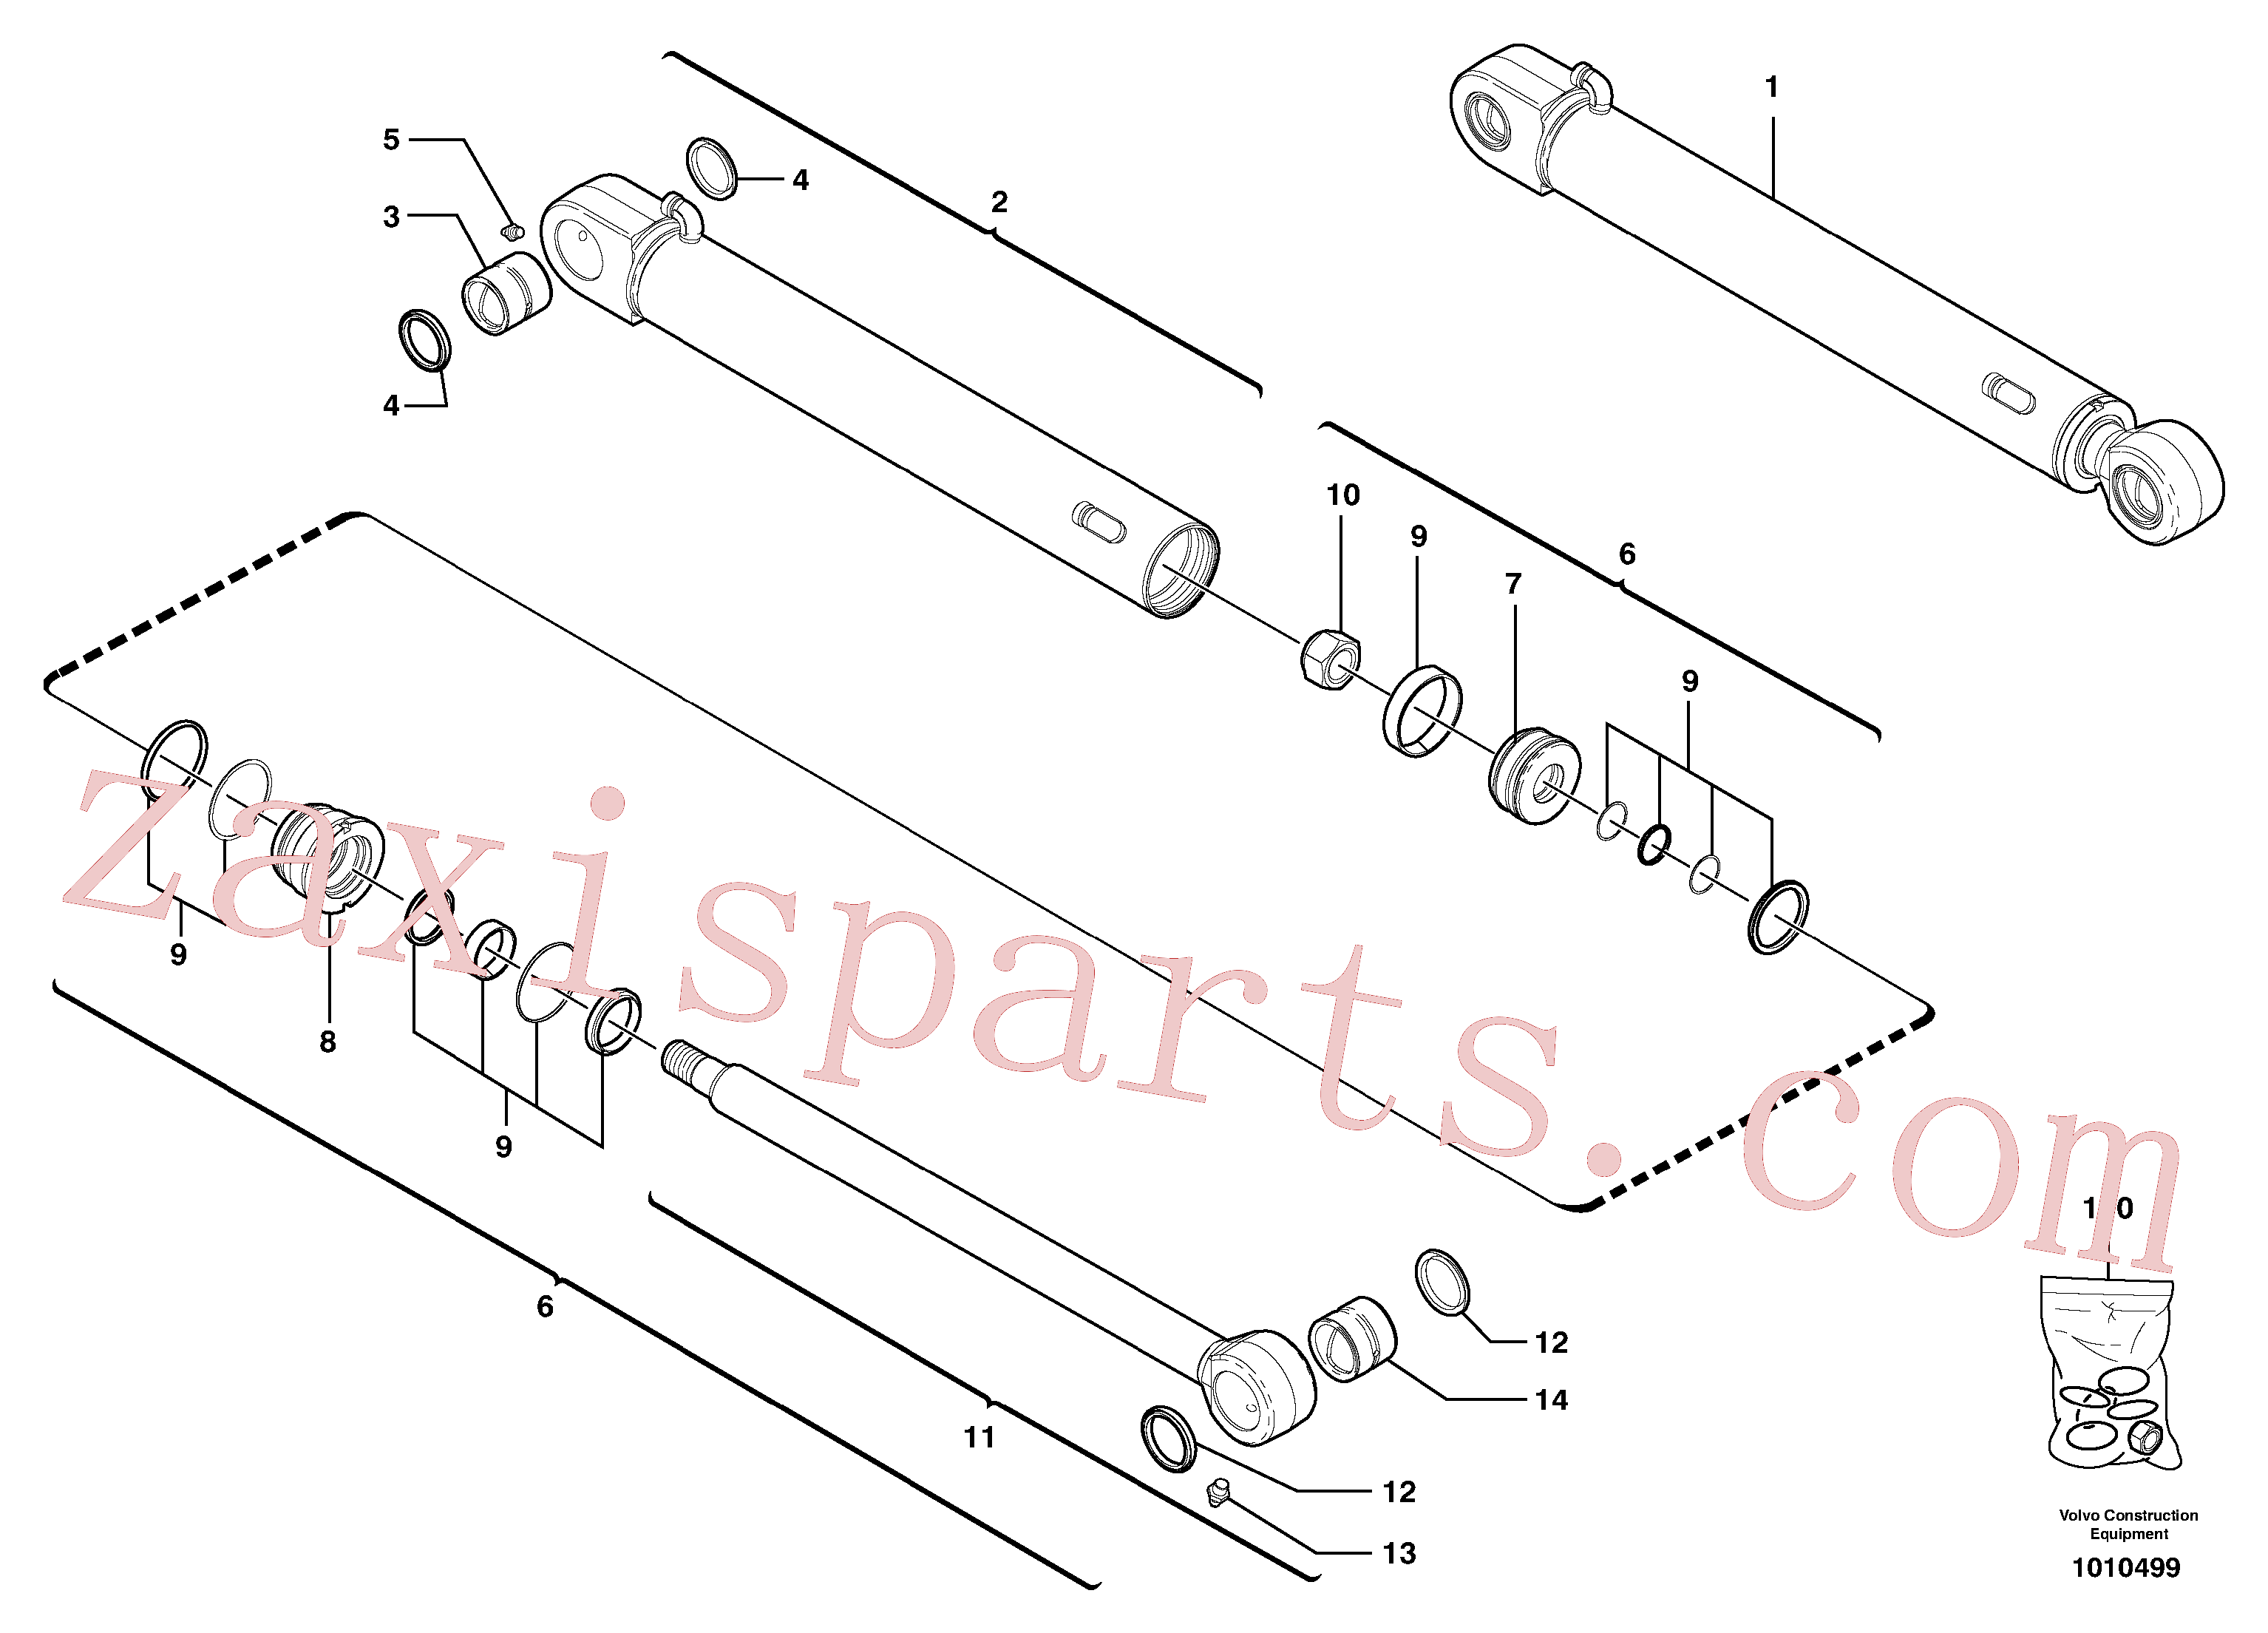 VOE11988459 for Volvo Bucket cylinder(1010499 assembly)